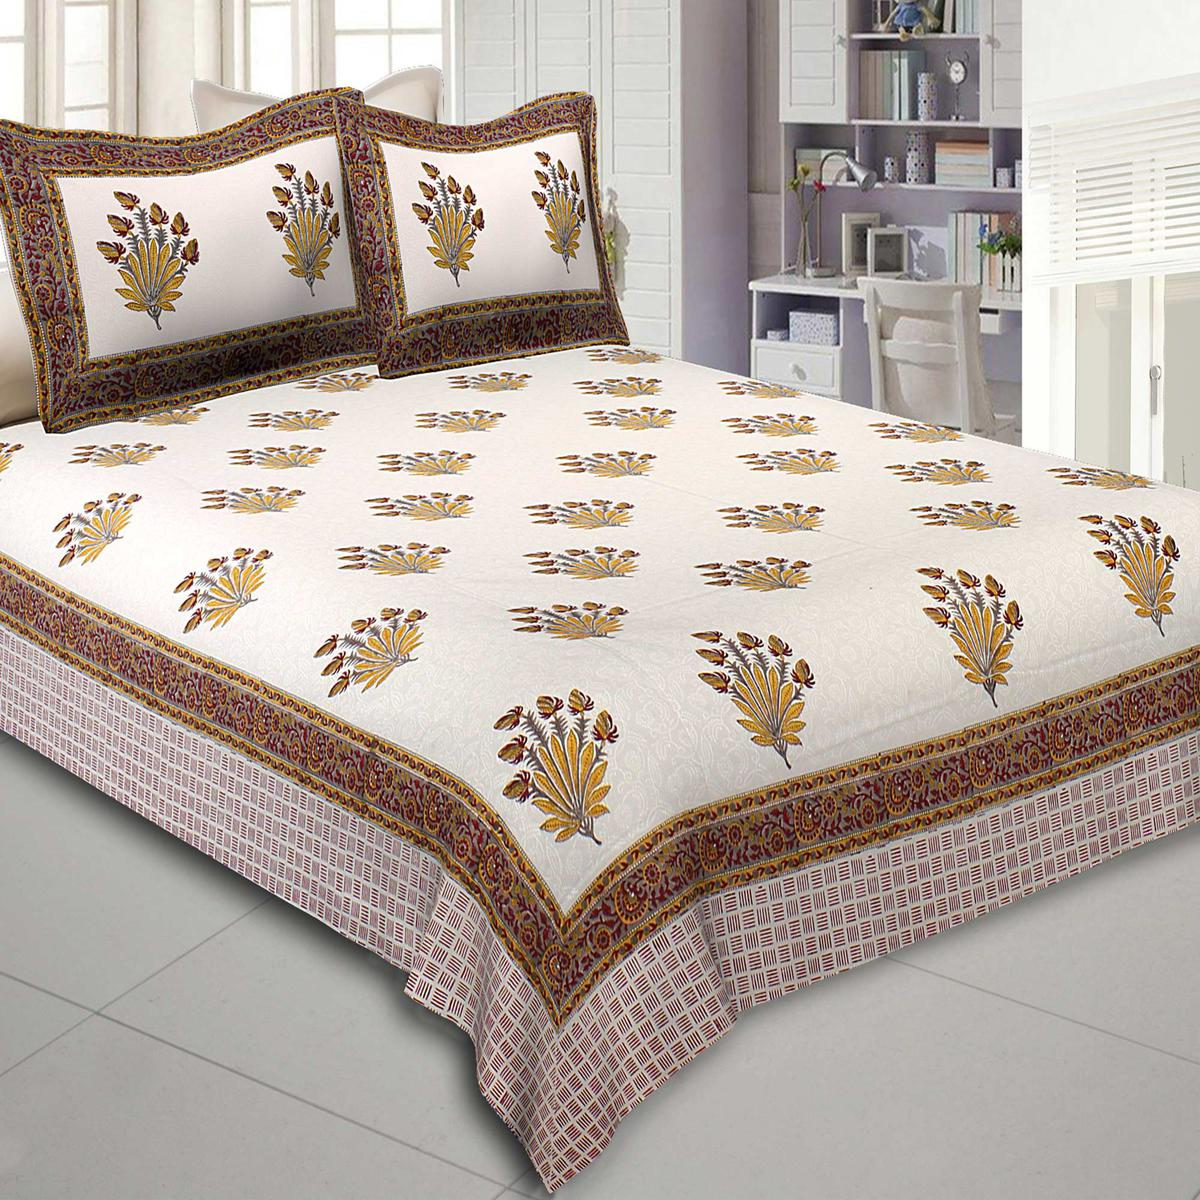 Amazing Cream Colored Feathers of Fortune Hand Block Print Cotton Double Bedsheet With Pillow Cover